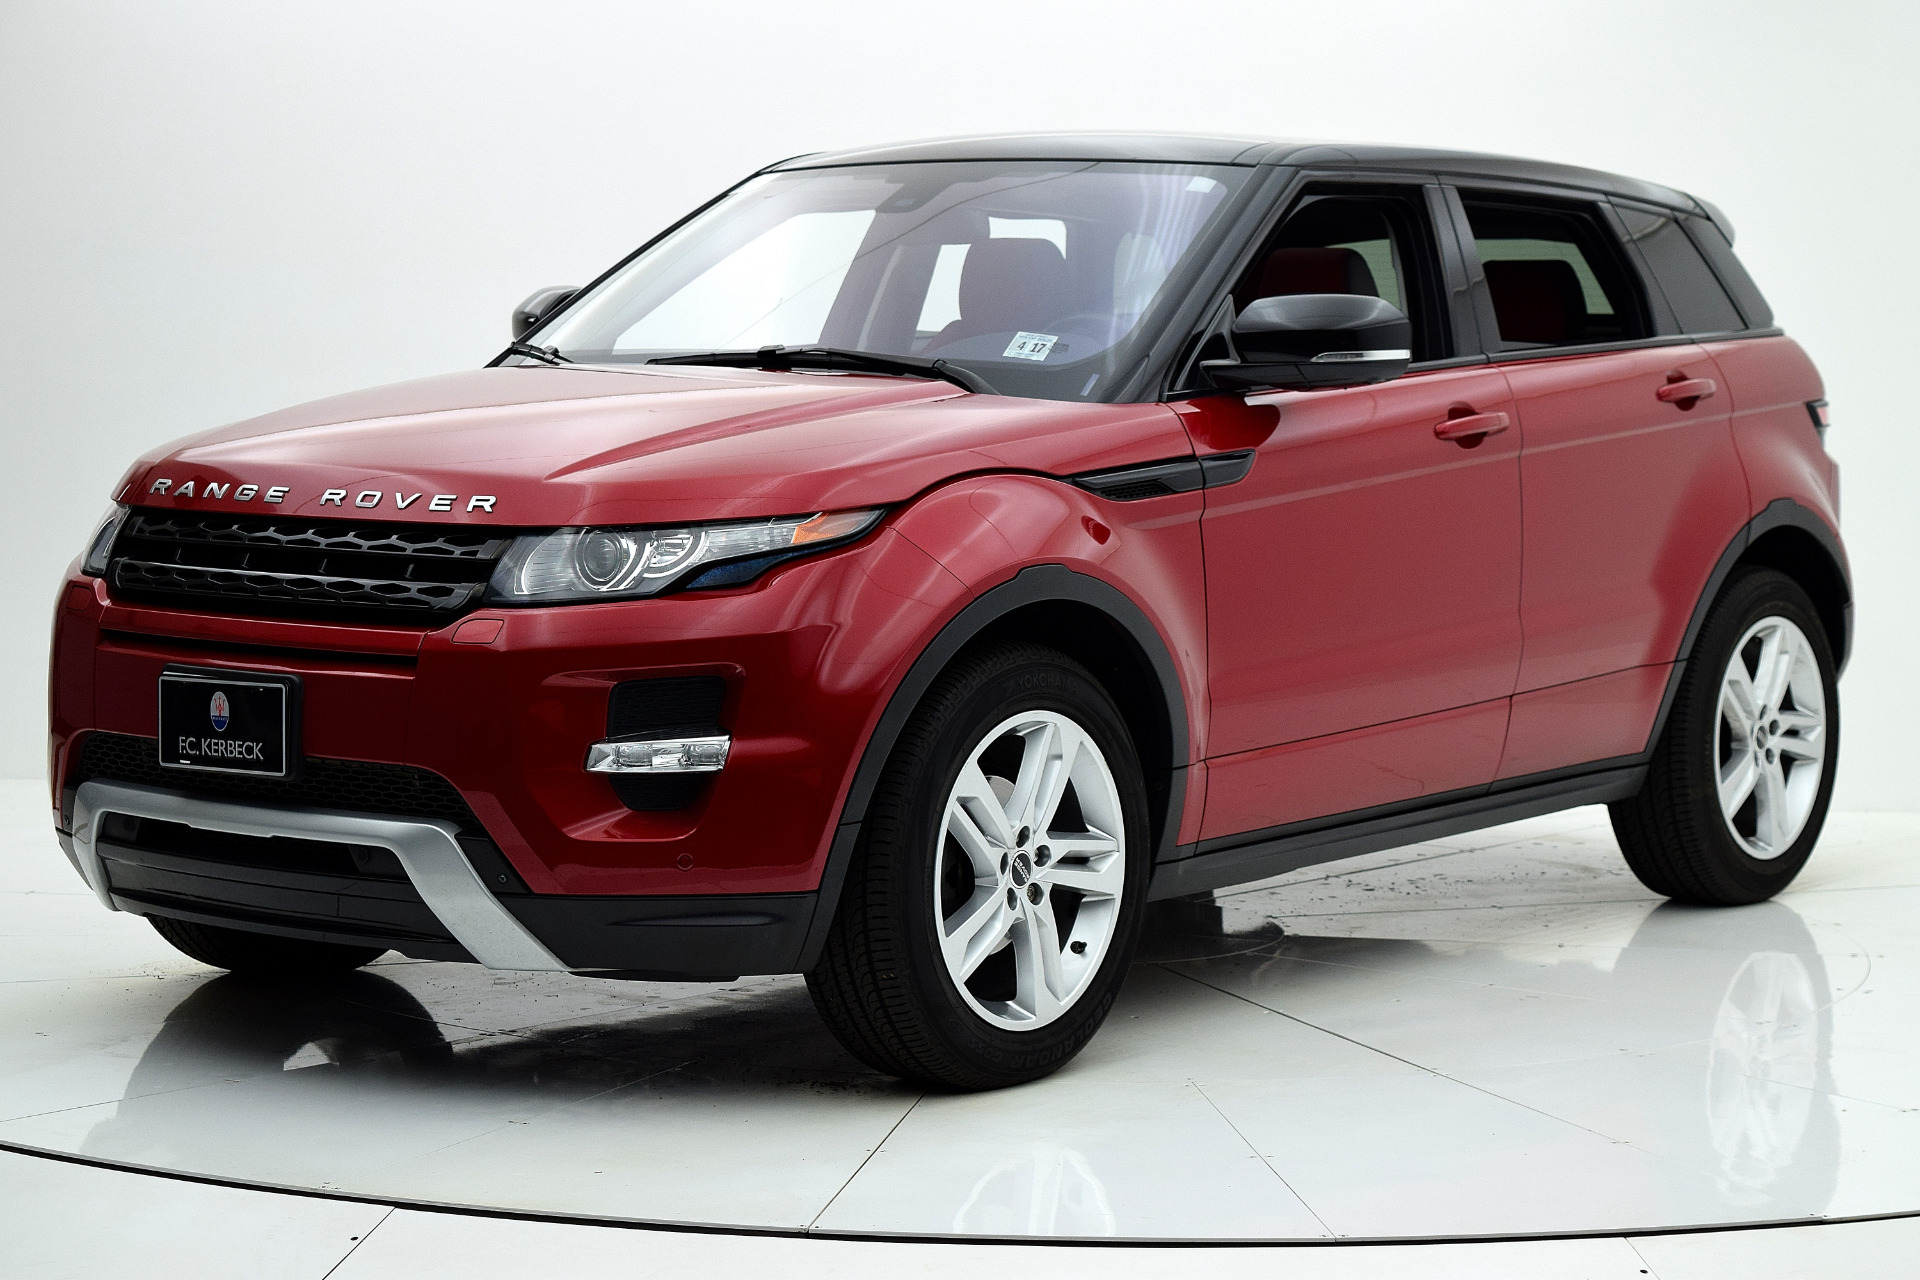 used 2012 land rover range rover evoque dynamic for sale 32 880 fc kerbeck lamborghini. Black Bedroom Furniture Sets. Home Design Ideas